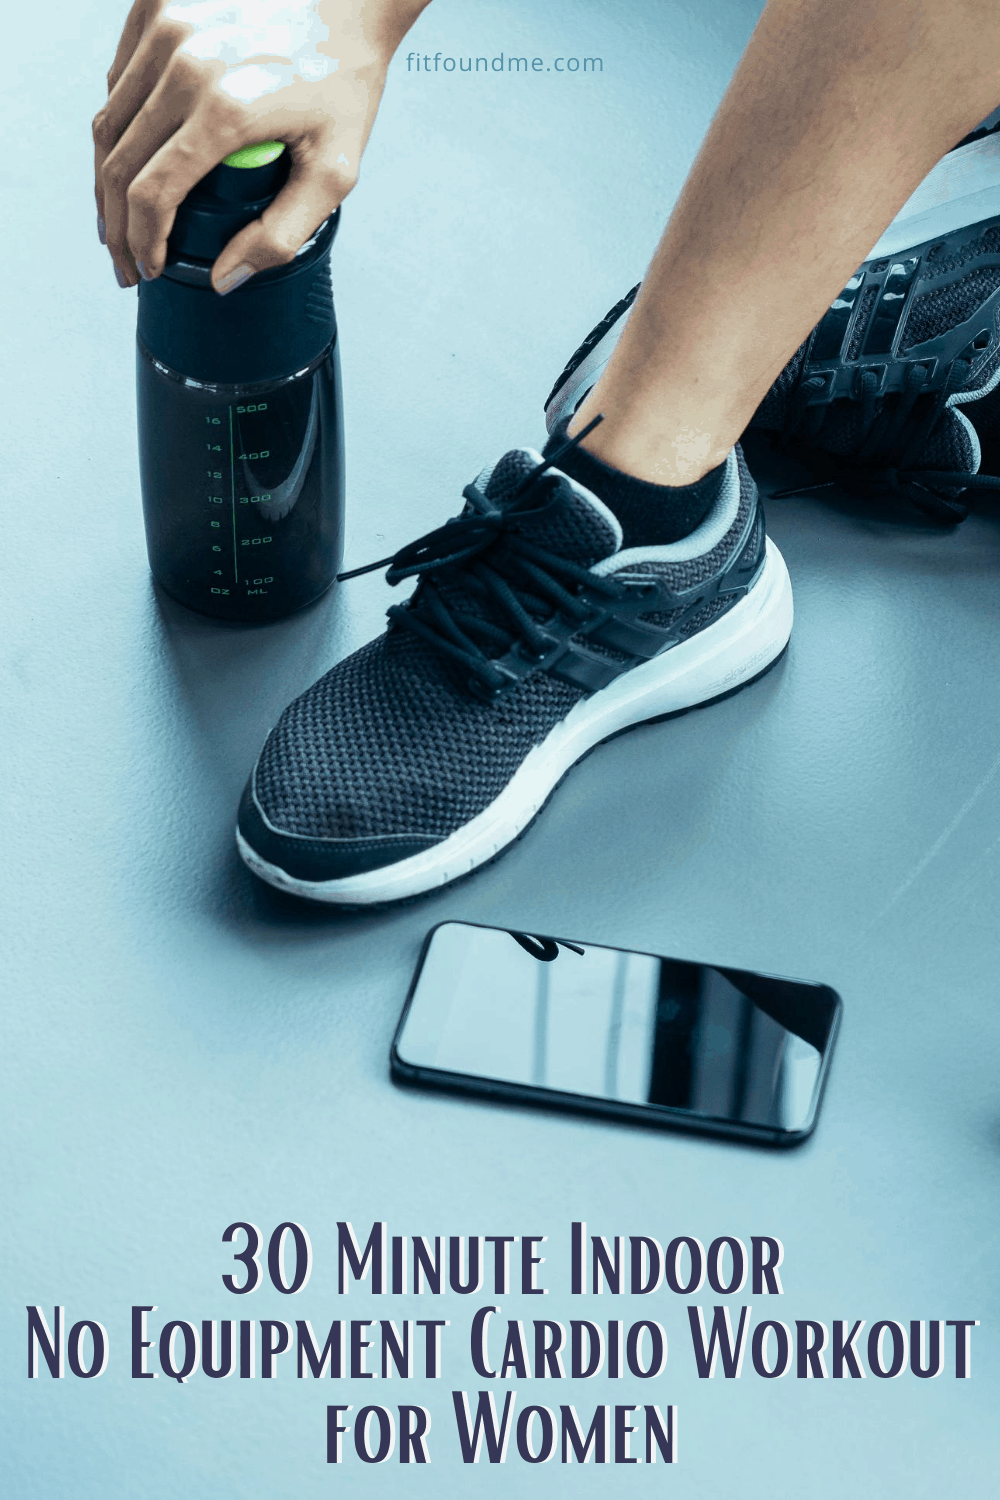 No equipment needed for this workout to burn calories, tone muscles and get you sweaty! Great for those home workouts or workouts while on vacation.  via @fitfoundme